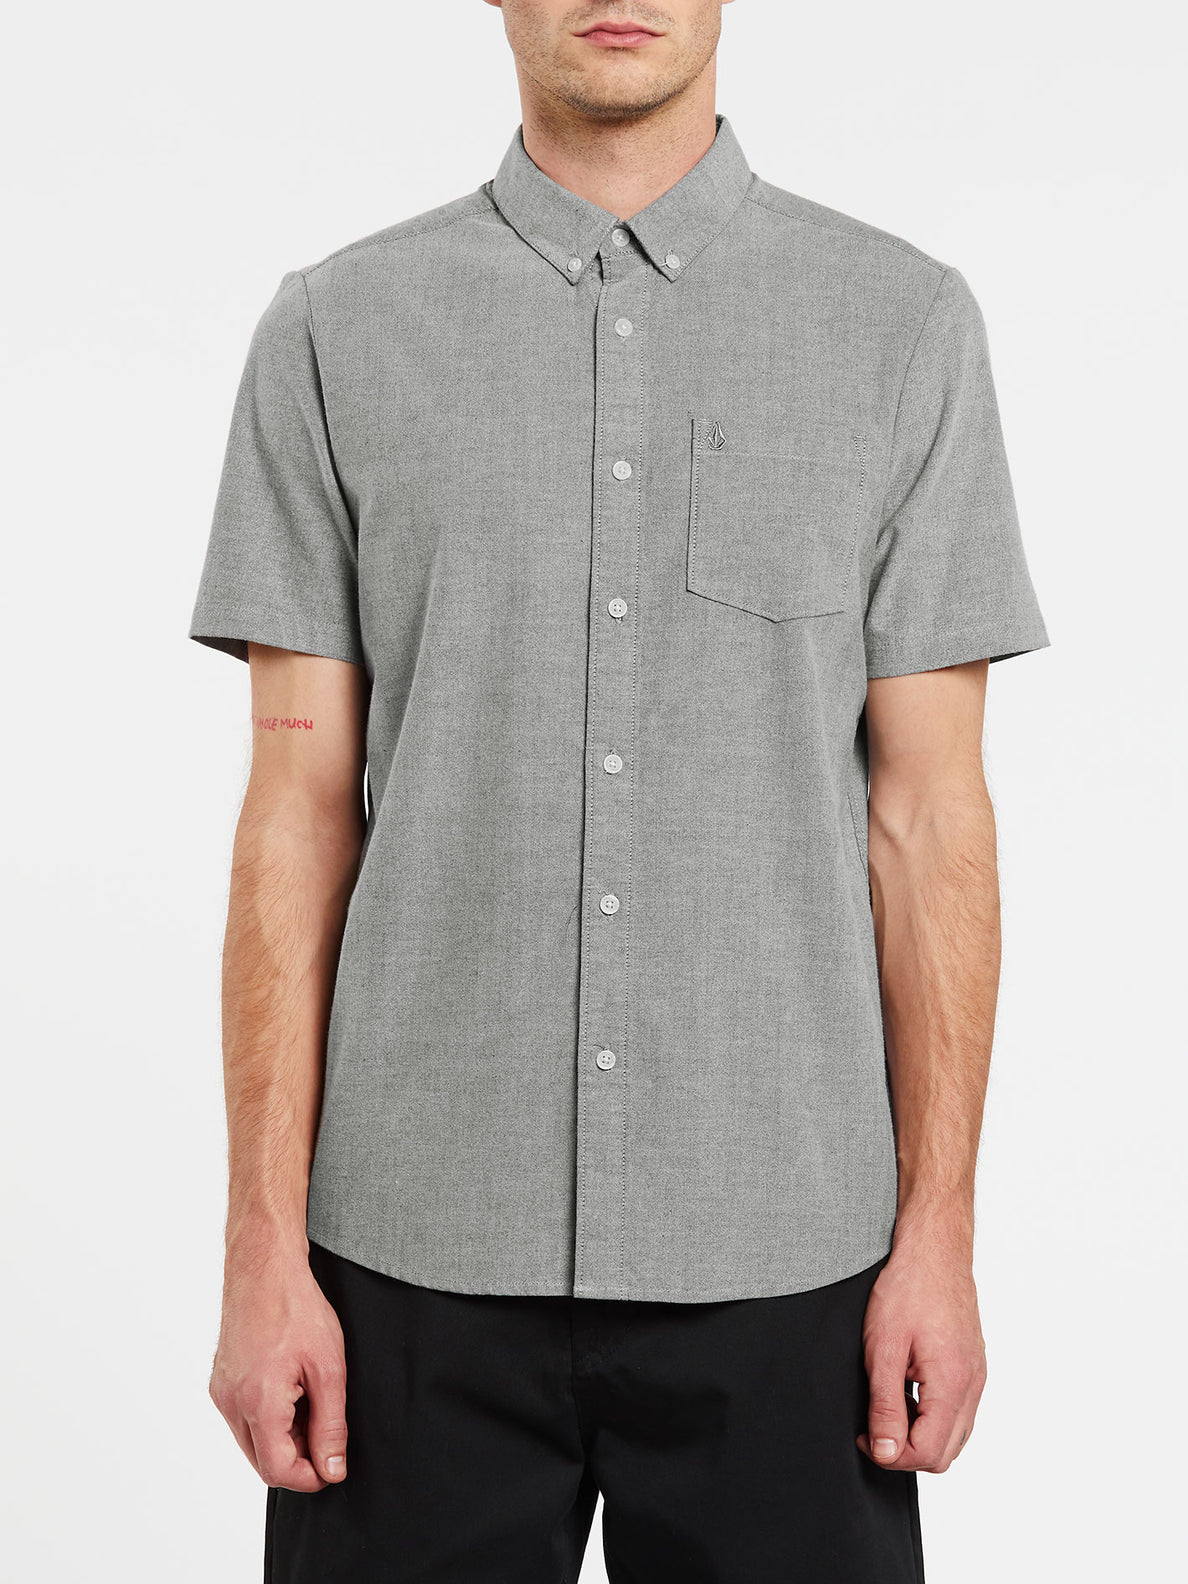 Everett Oxford Short Sleeve - Black